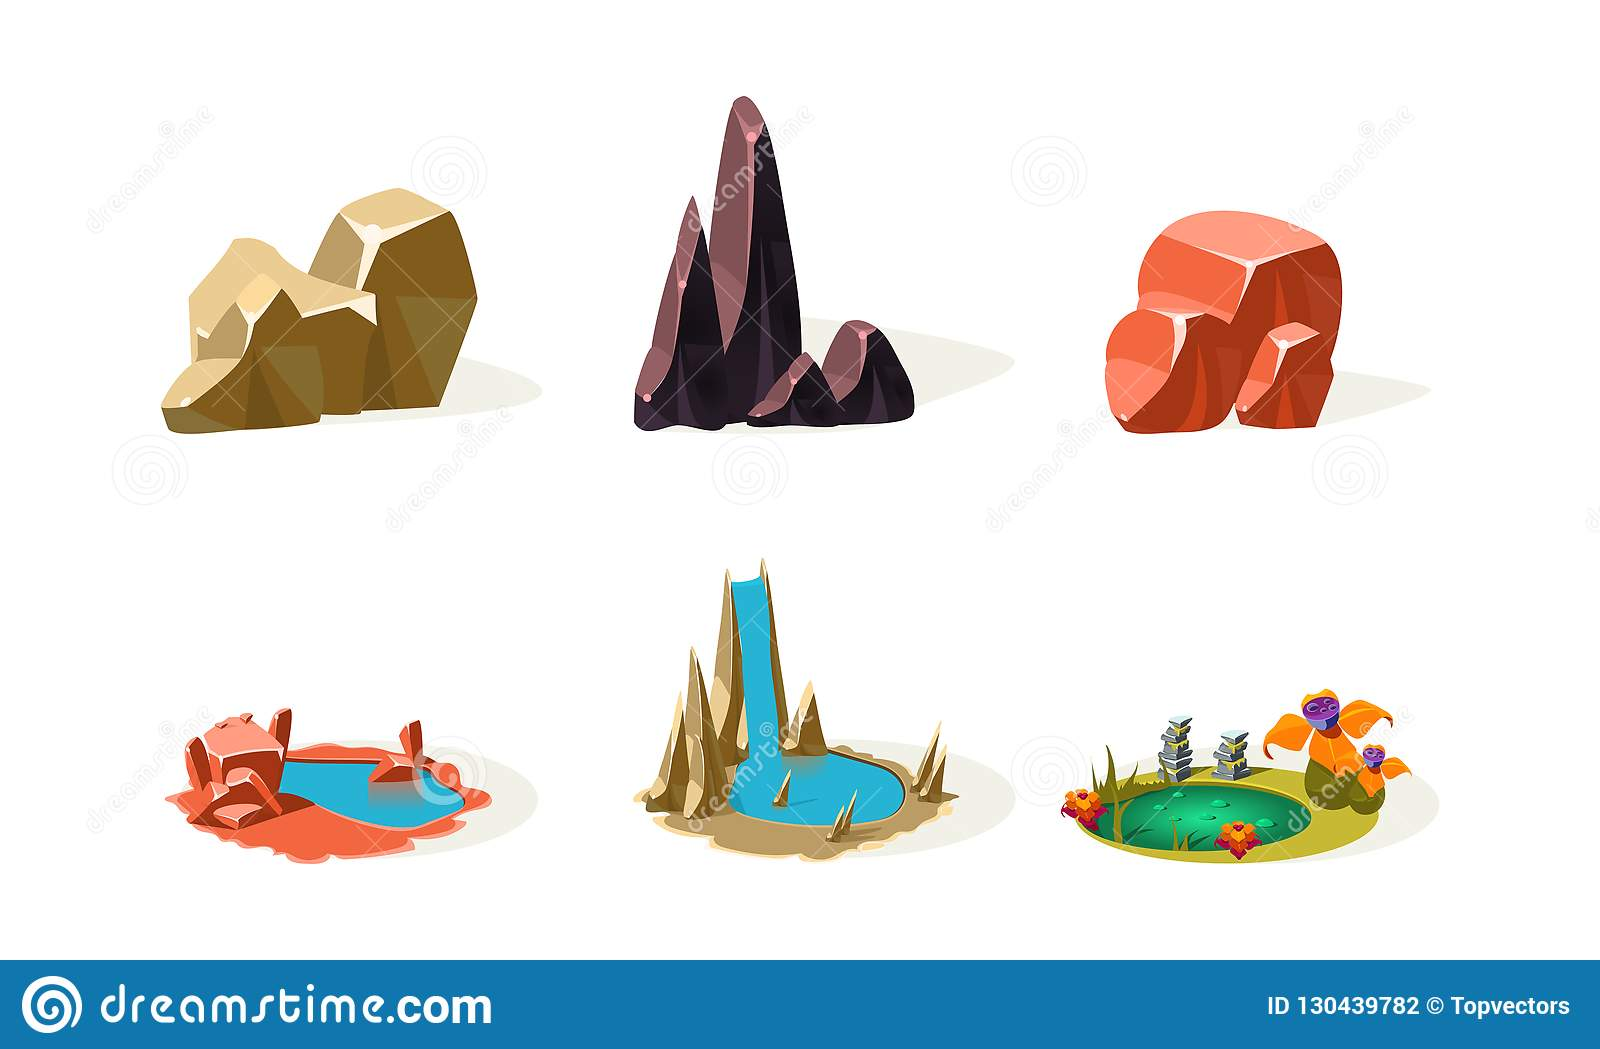 Rock stones, lakes, waterfall, elements of natural landscape, user interface assets for mobile app or video game vector